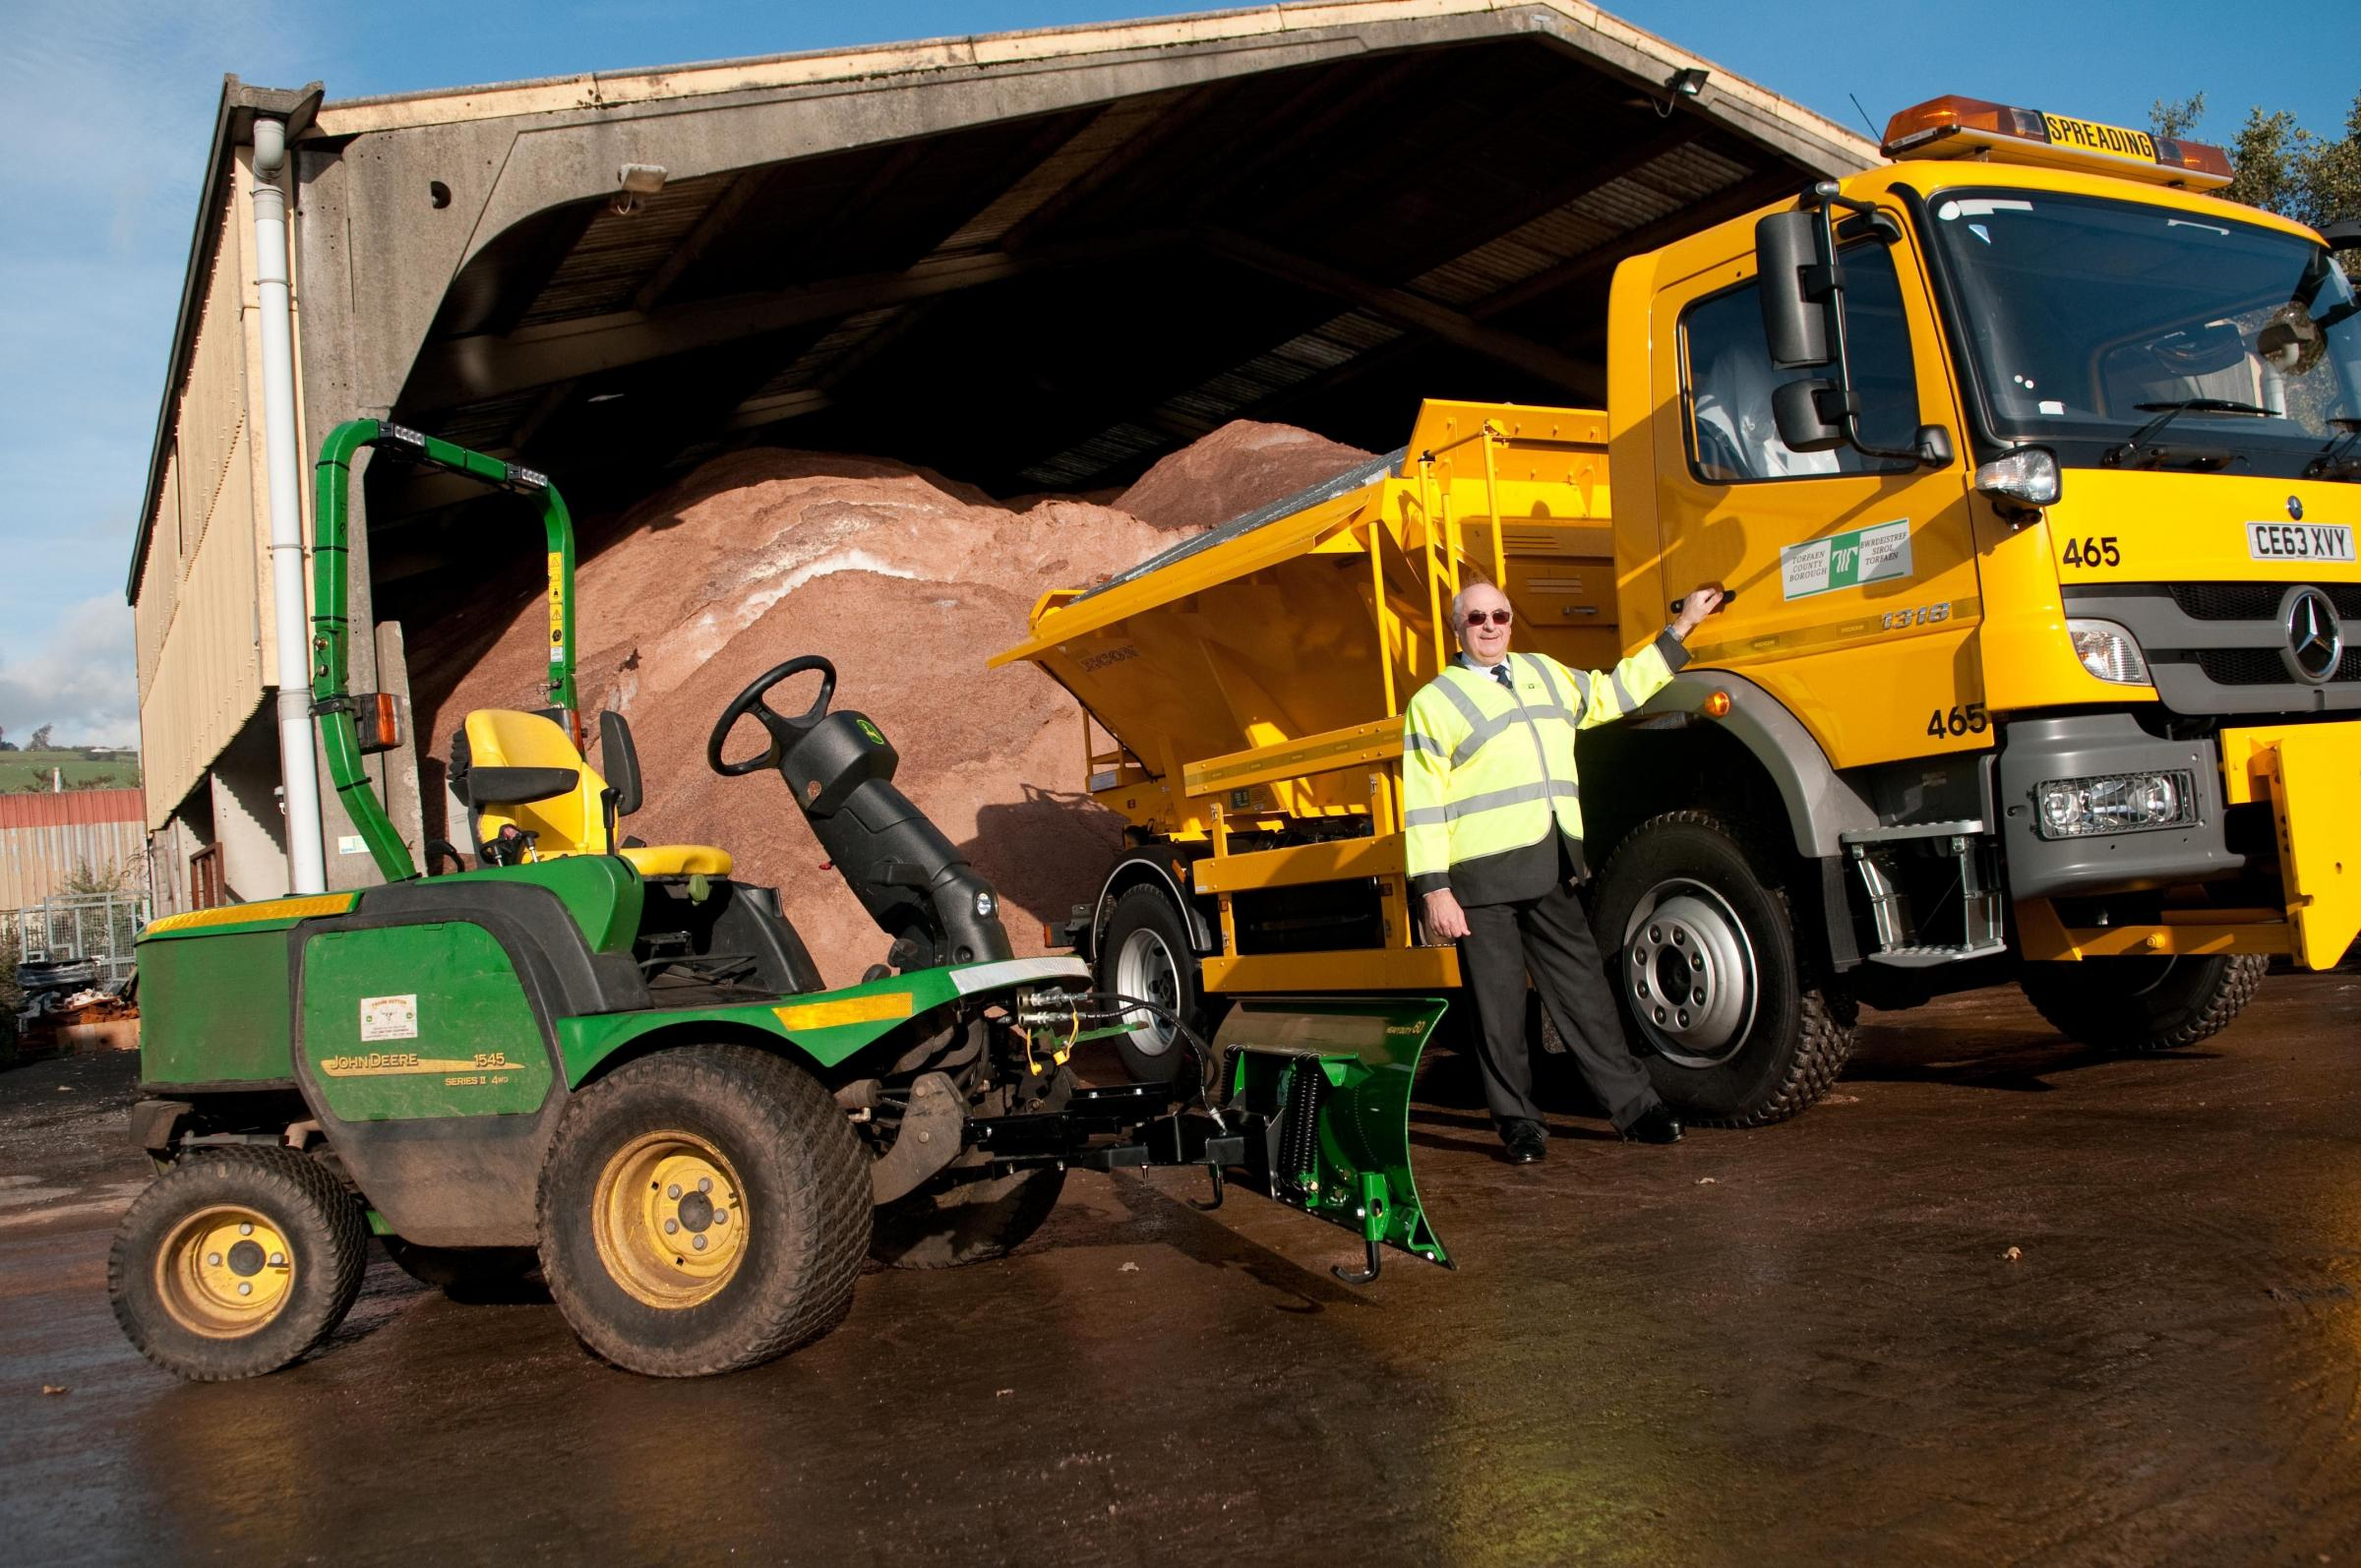 Gritters will be out on the roads